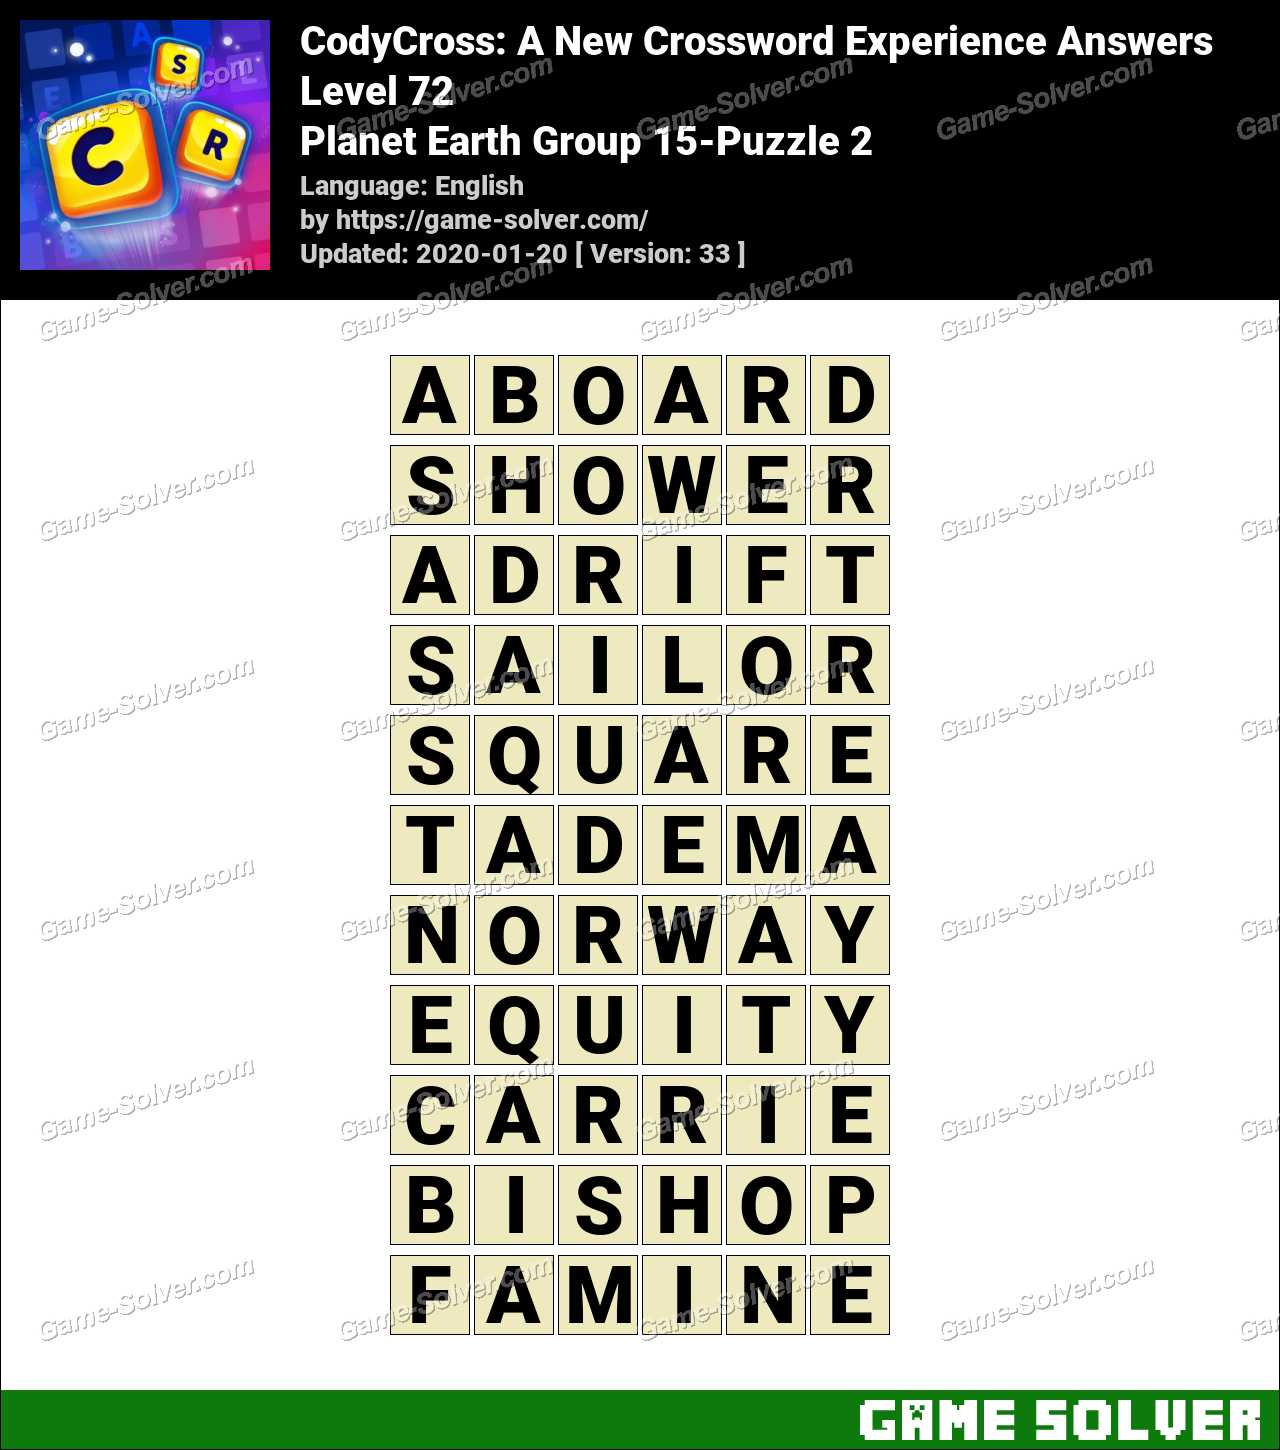 CodyCross Planet Earth Group 15-Puzzle 2 Answers